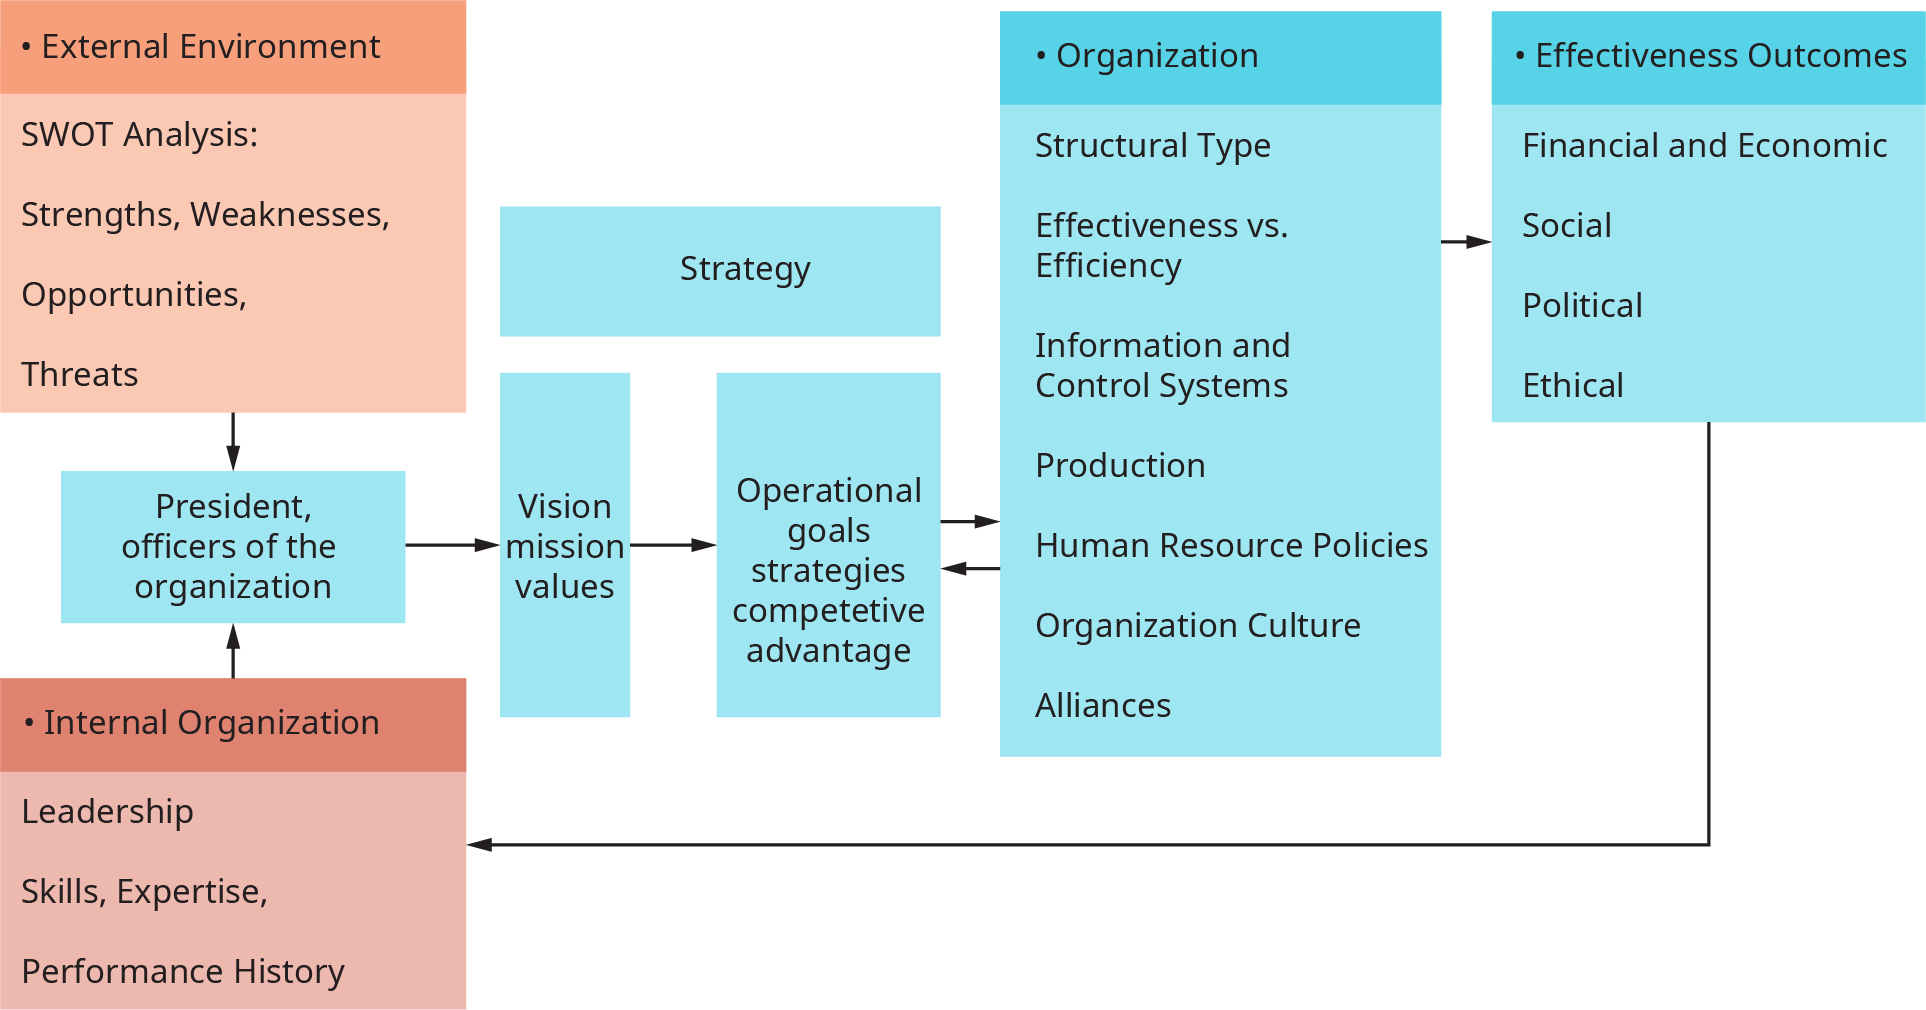 A diagram illustrates the integration of the internal environment and the external environment of an organization.